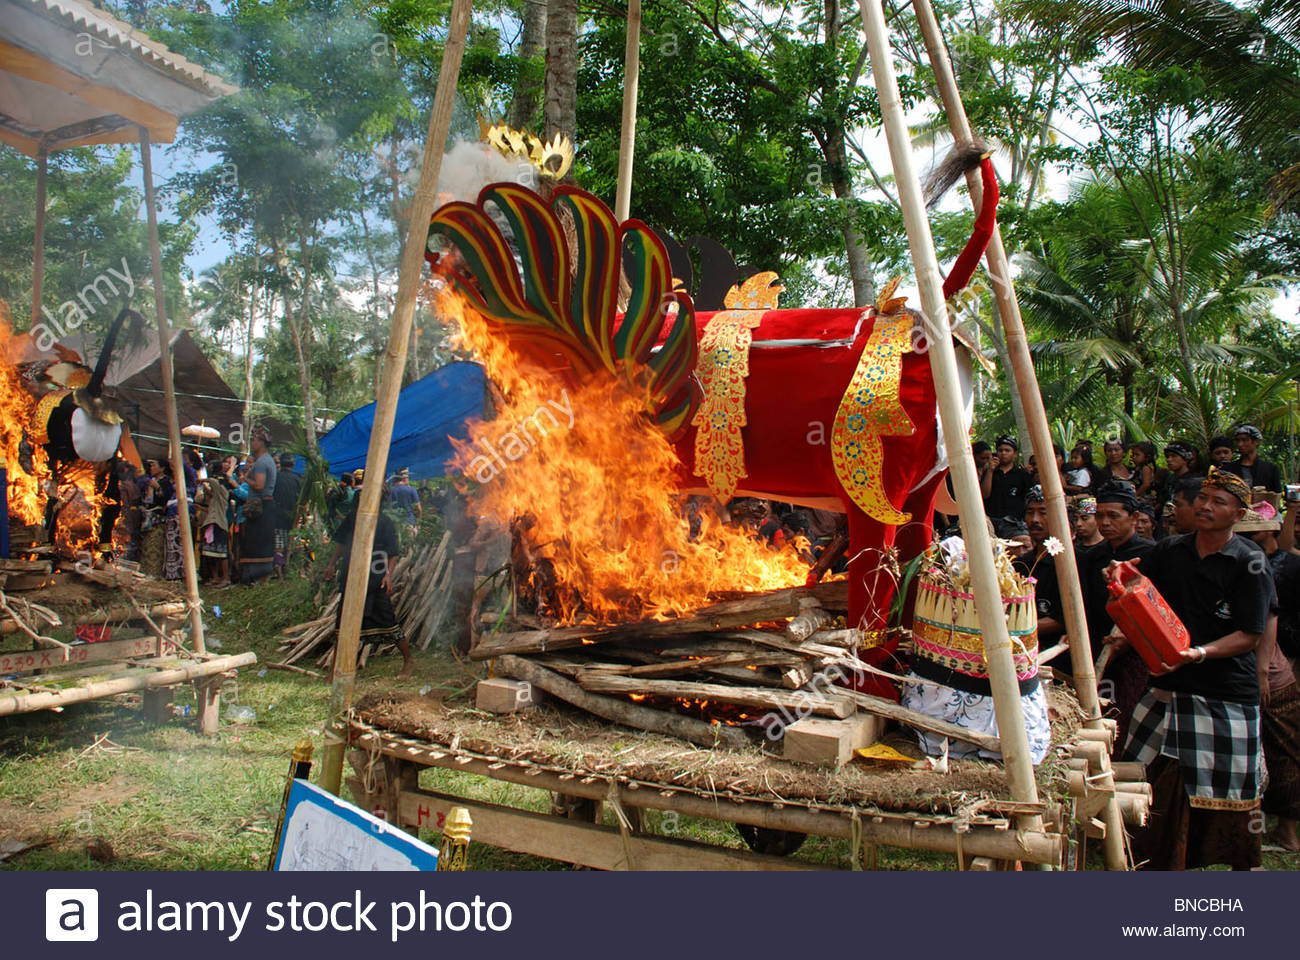 Ornate coffin in the form of a red winged bull is set on fire in Hindu mass cremation ceremony - Stock Image